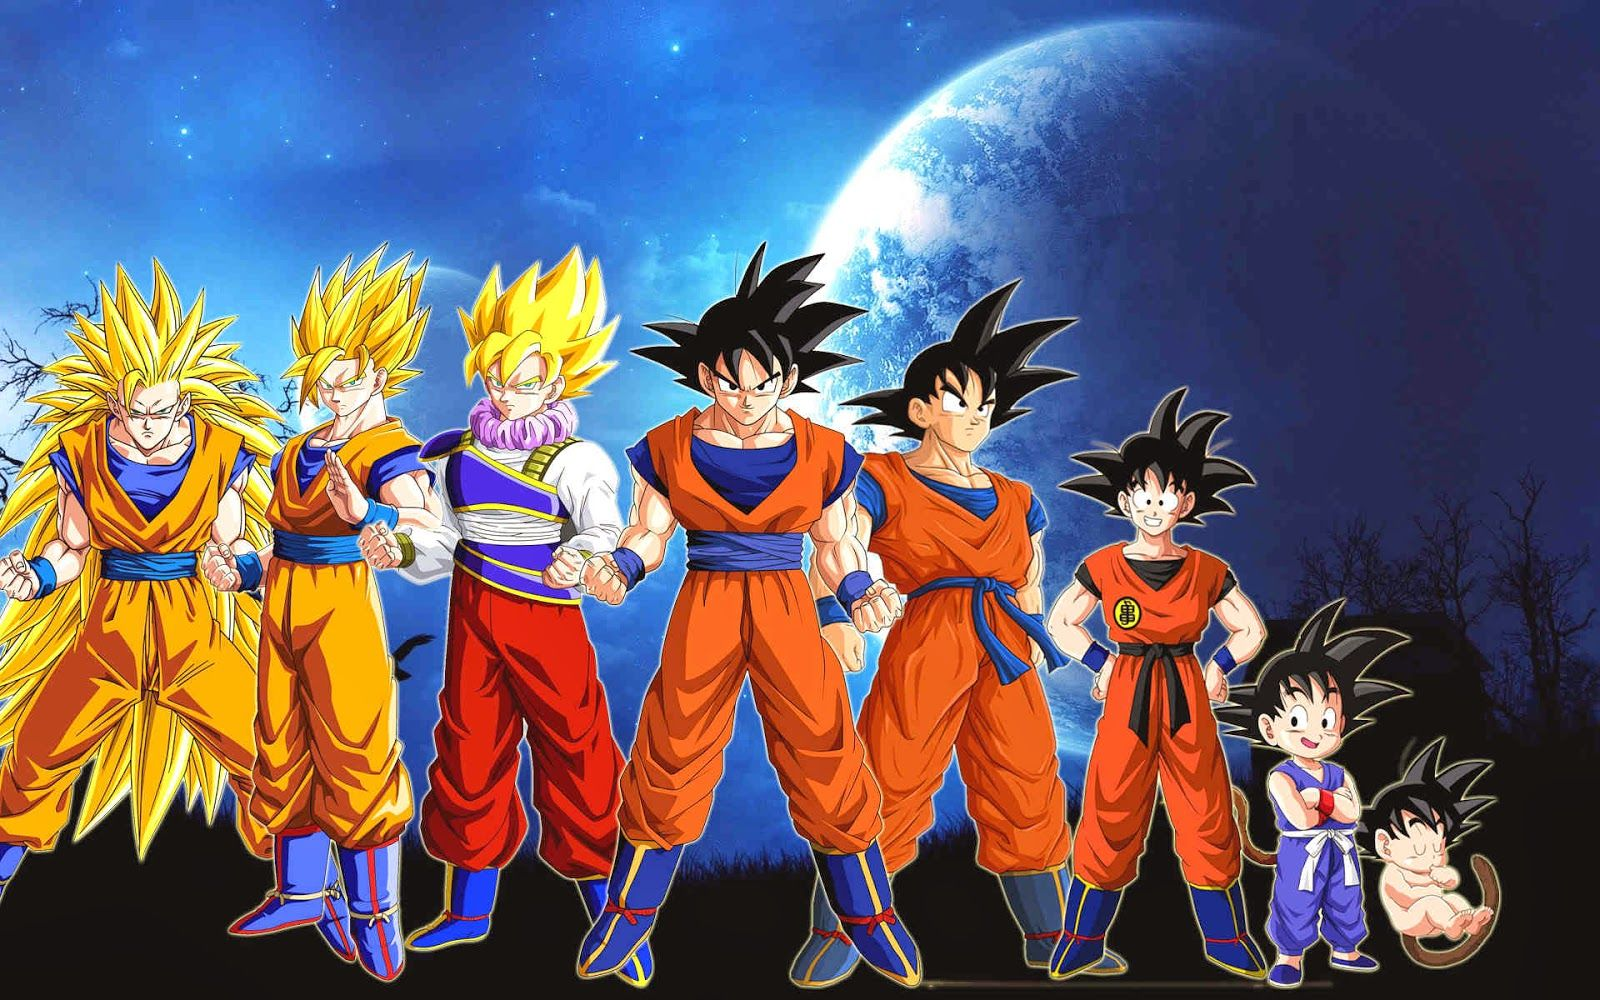 Undefined Cool Wallpaper For Iphone 40 Wallpapers: Undefined Dragon Ball Goku Wallpapers (46 Wallpapers